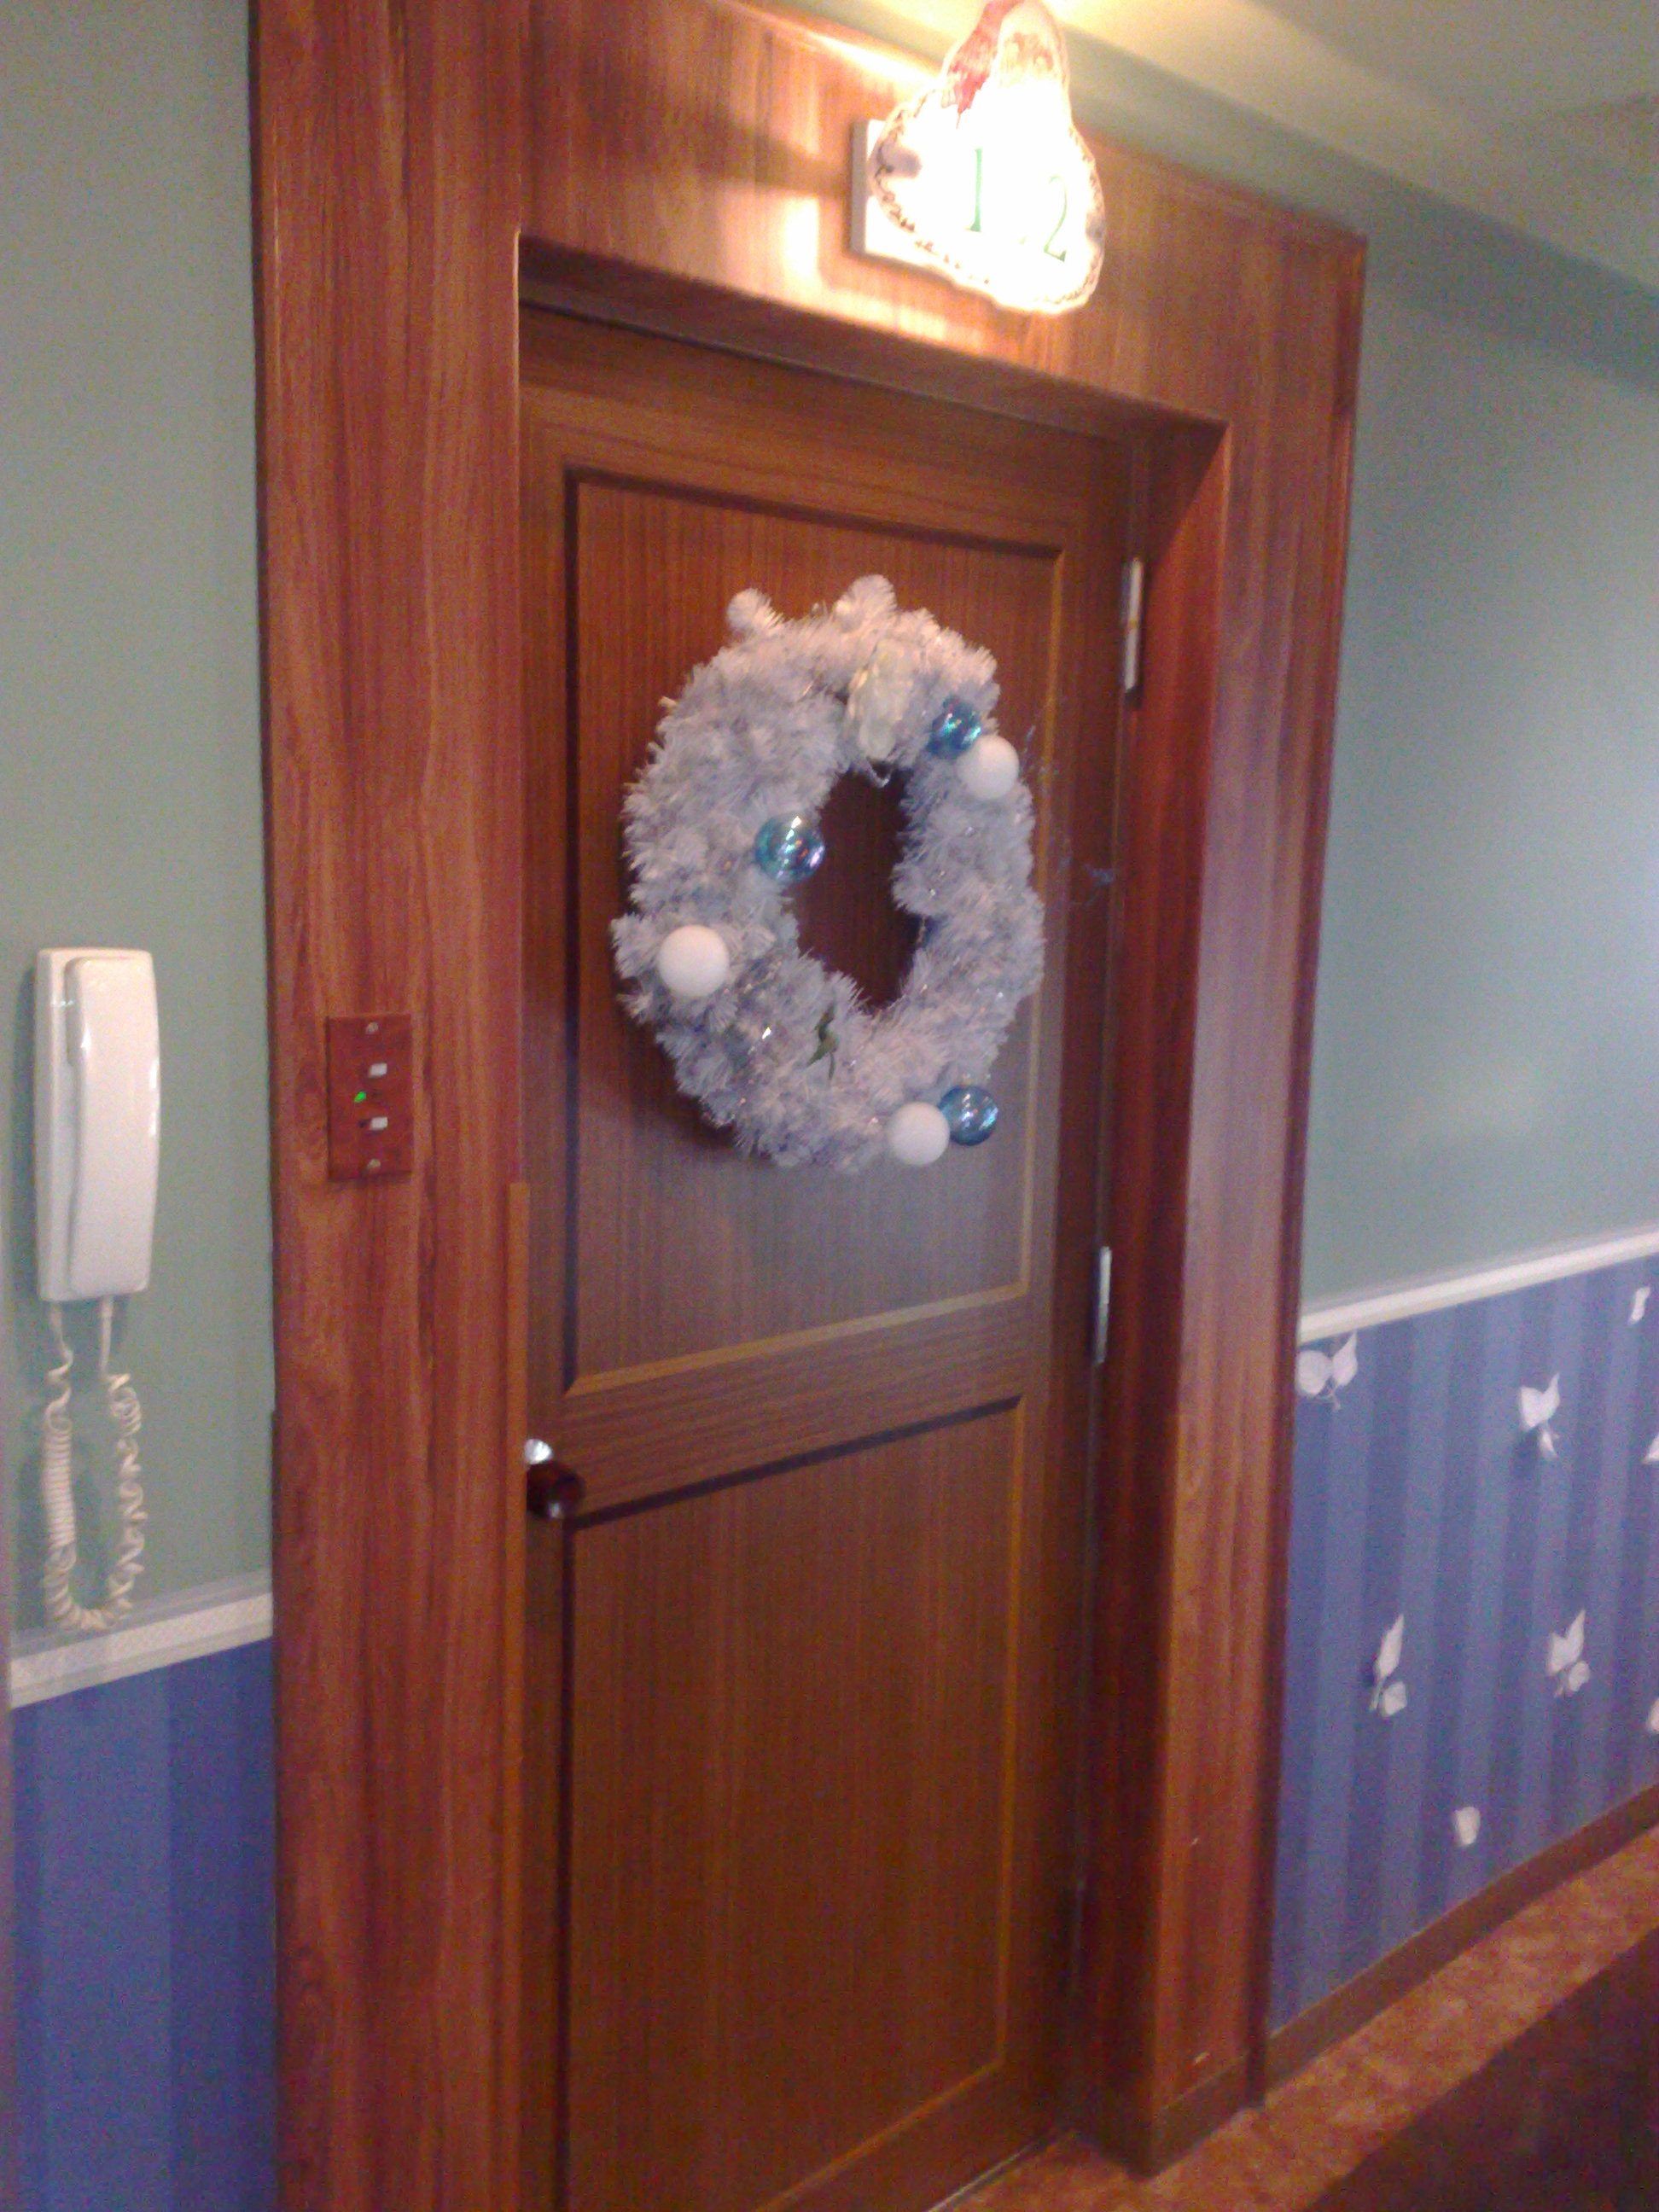 Inside Hotel Room Door: A Christmas-themed Love Motel